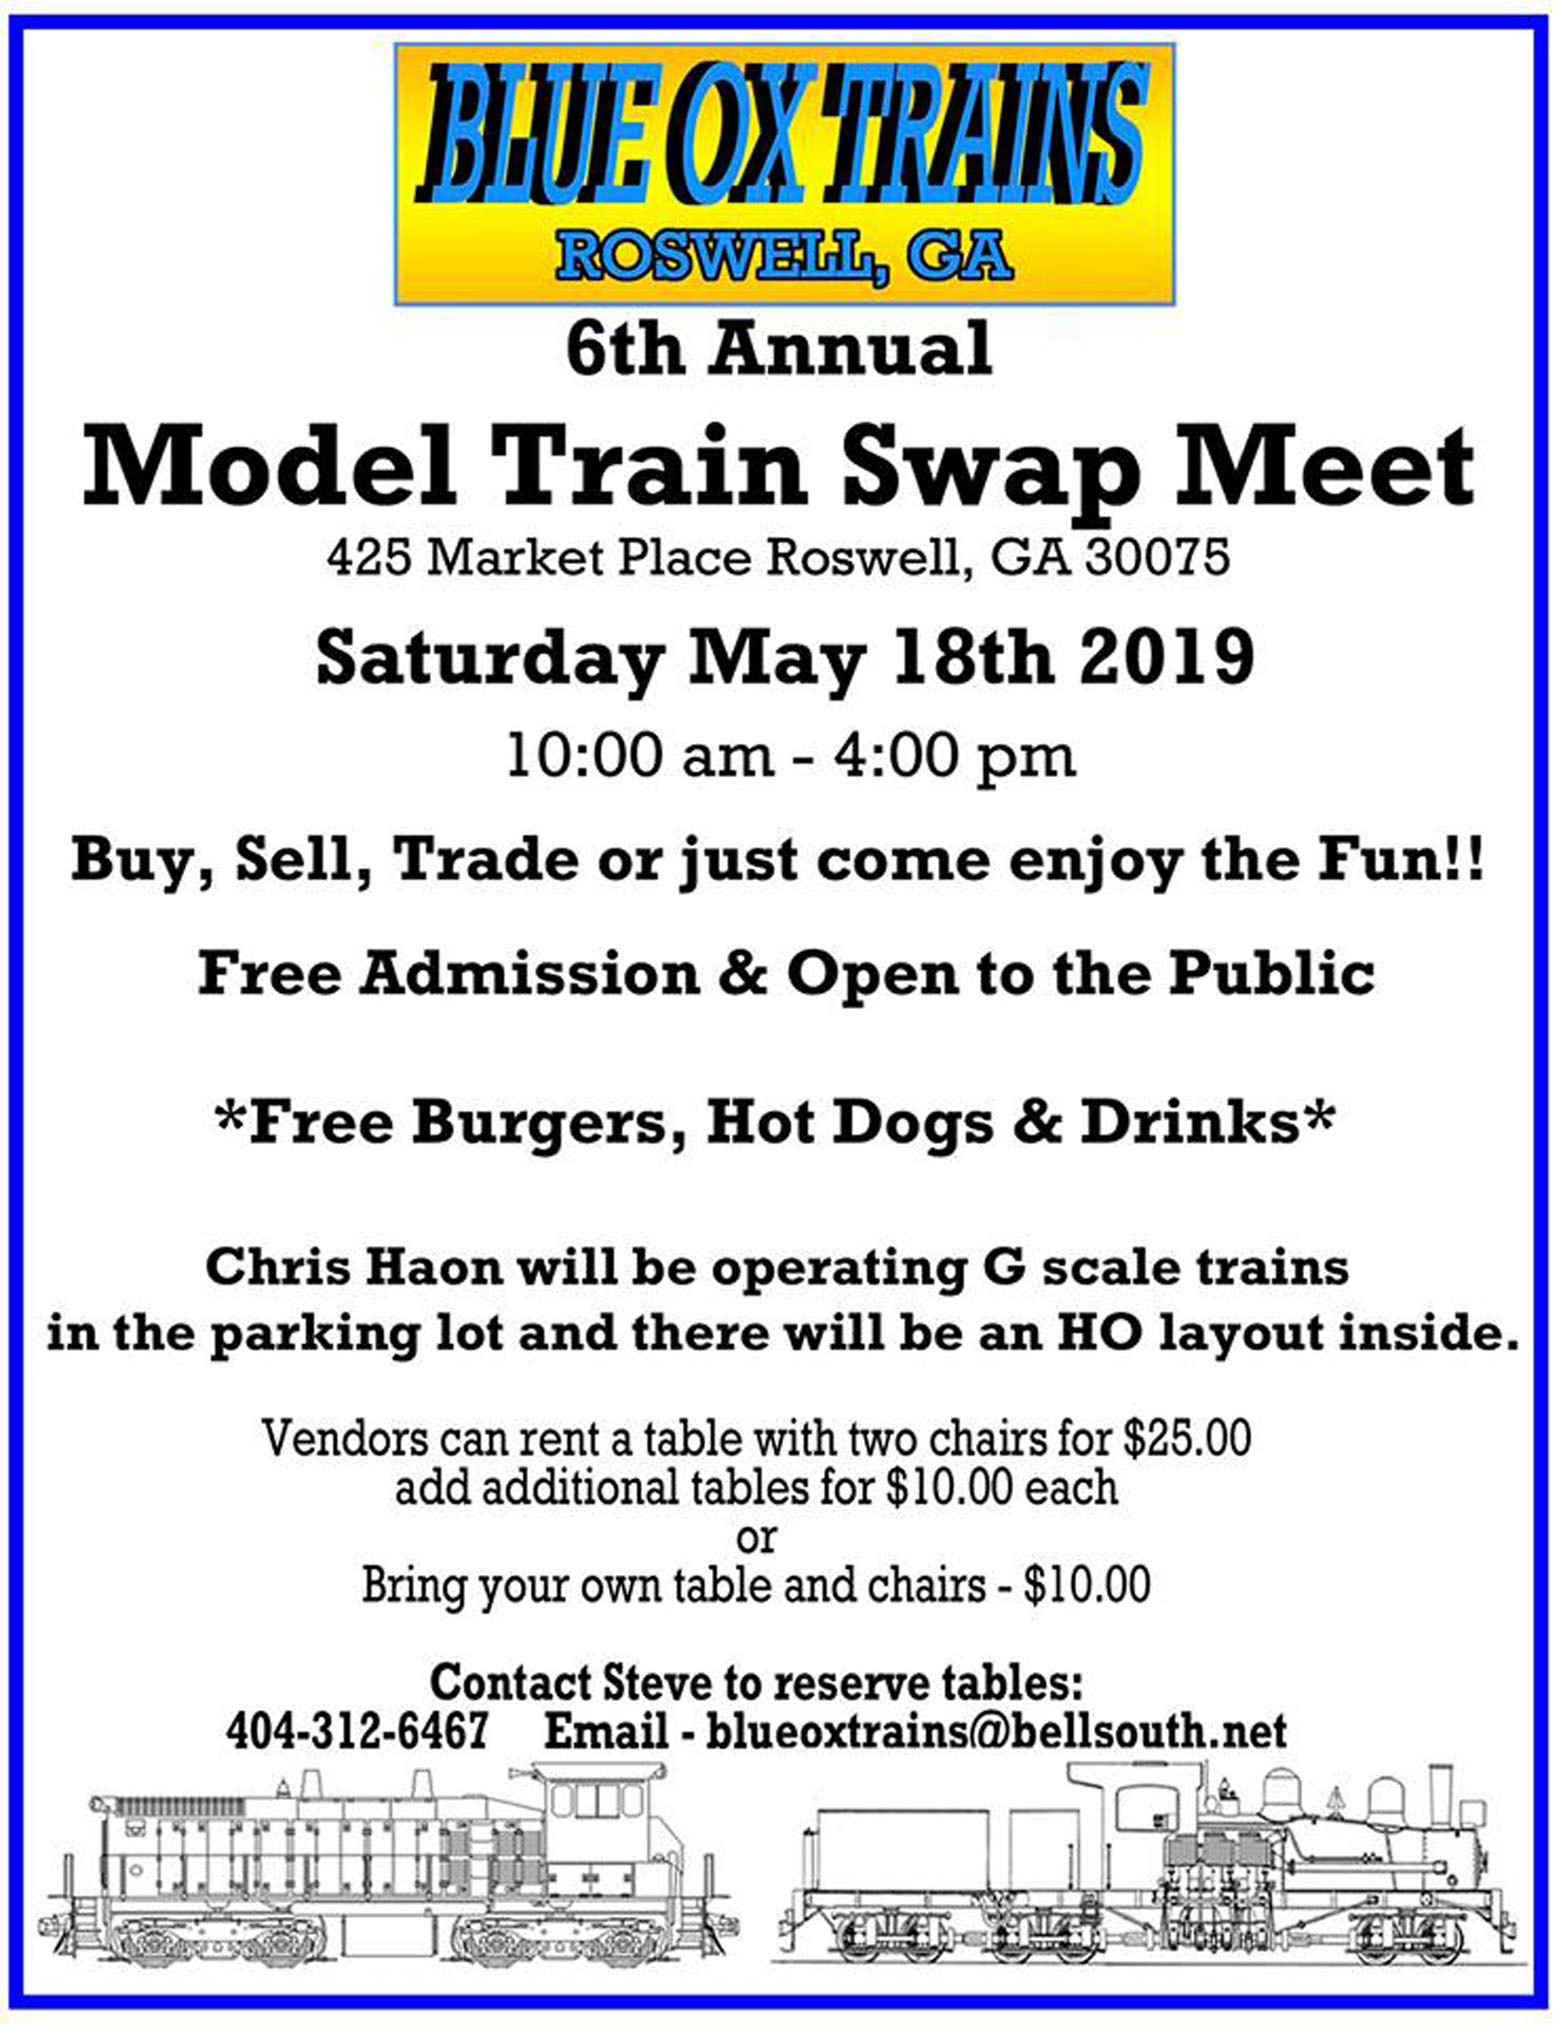 swap-meet-2019-flyer.jpg